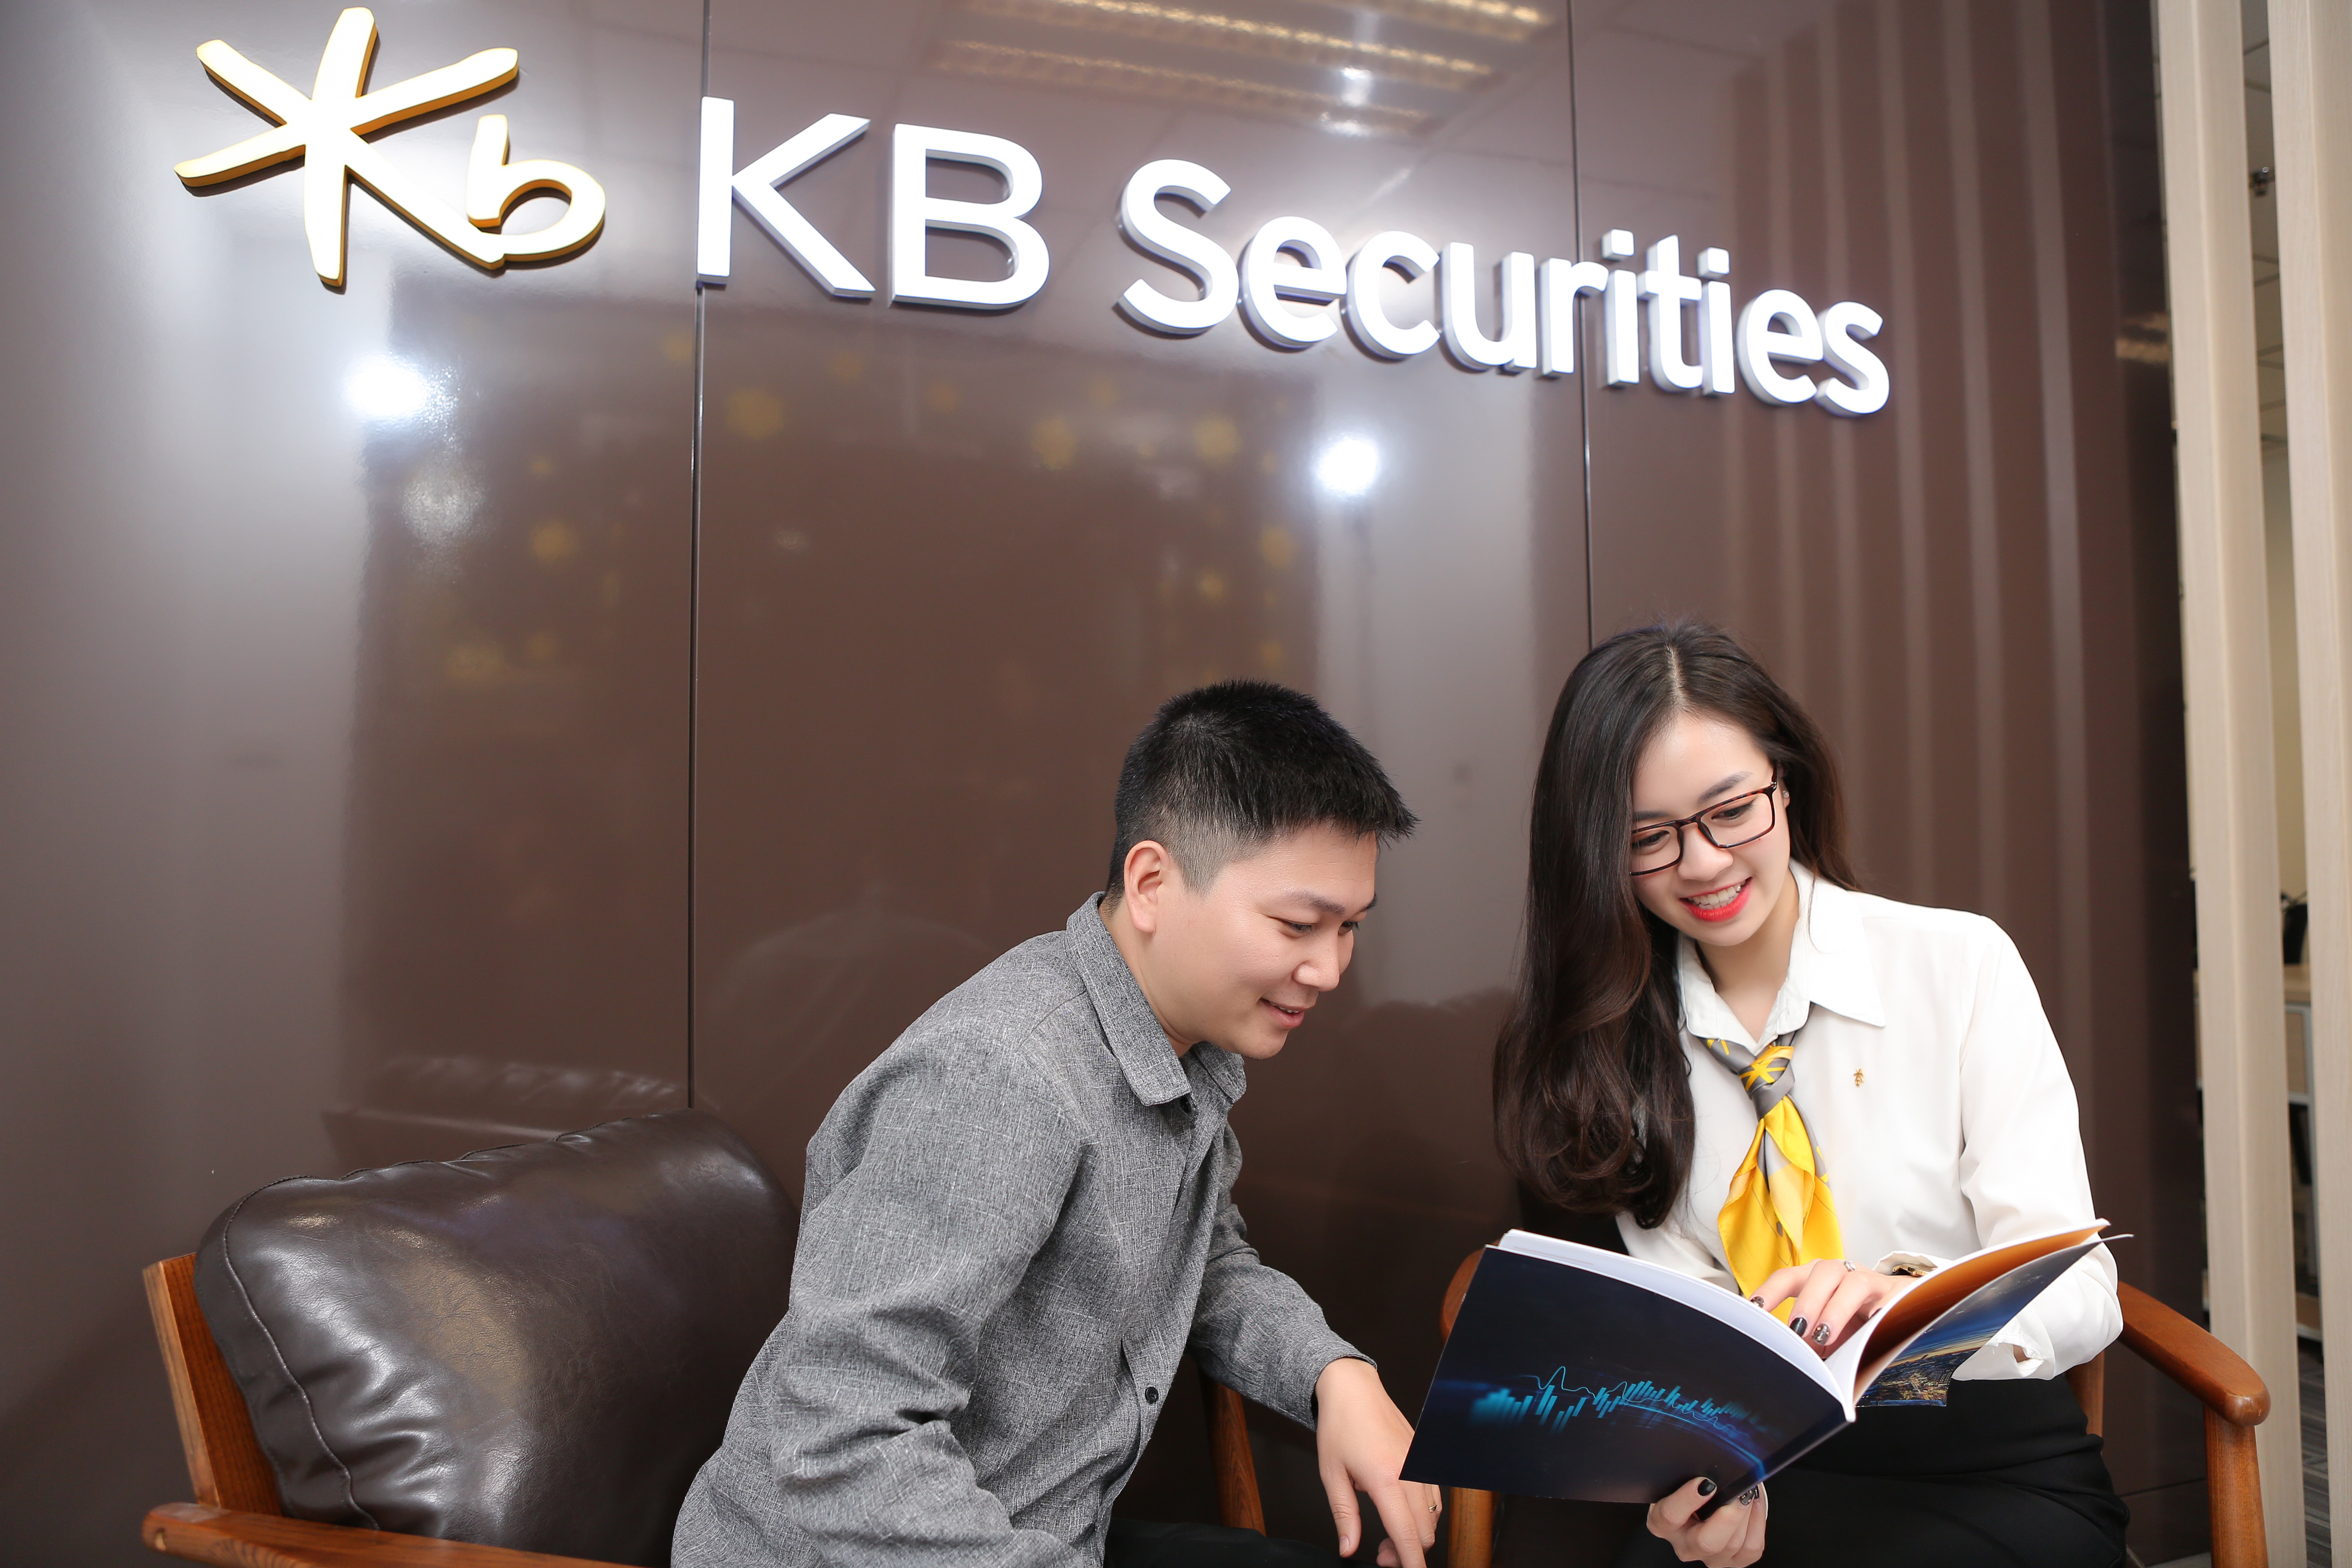 KBSV's Profit before tax is VND 43 billion, increased by 72% as compared to same period of last year